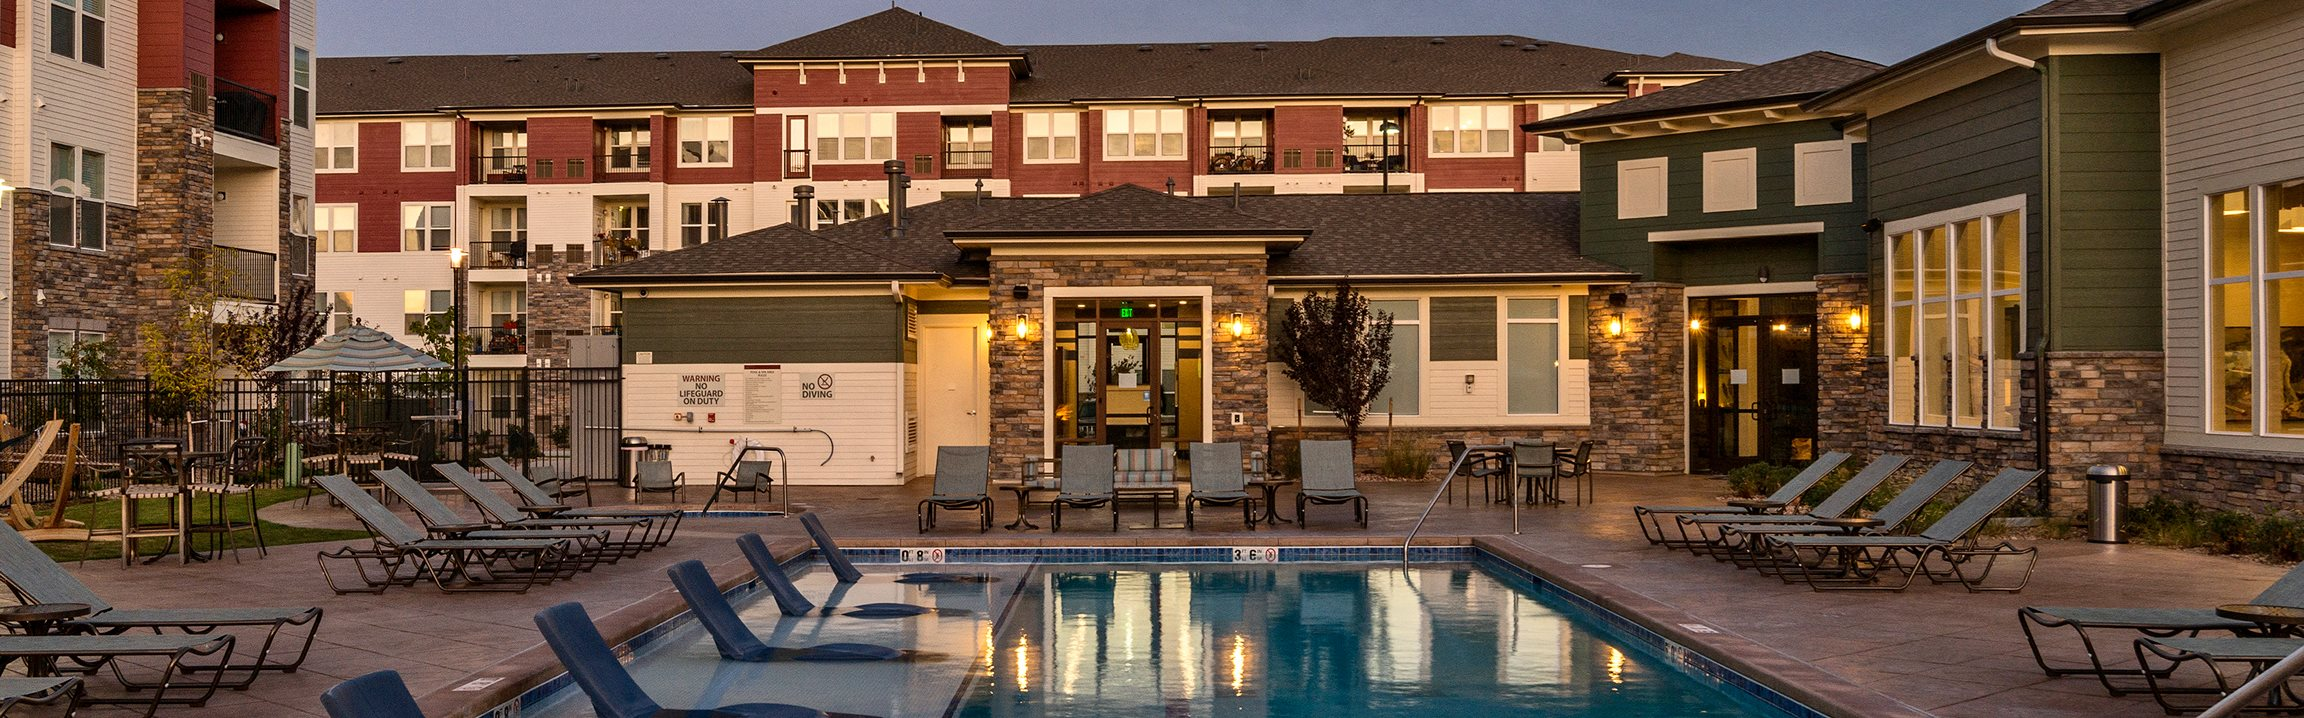 Enclave at Cherry Creek pool area